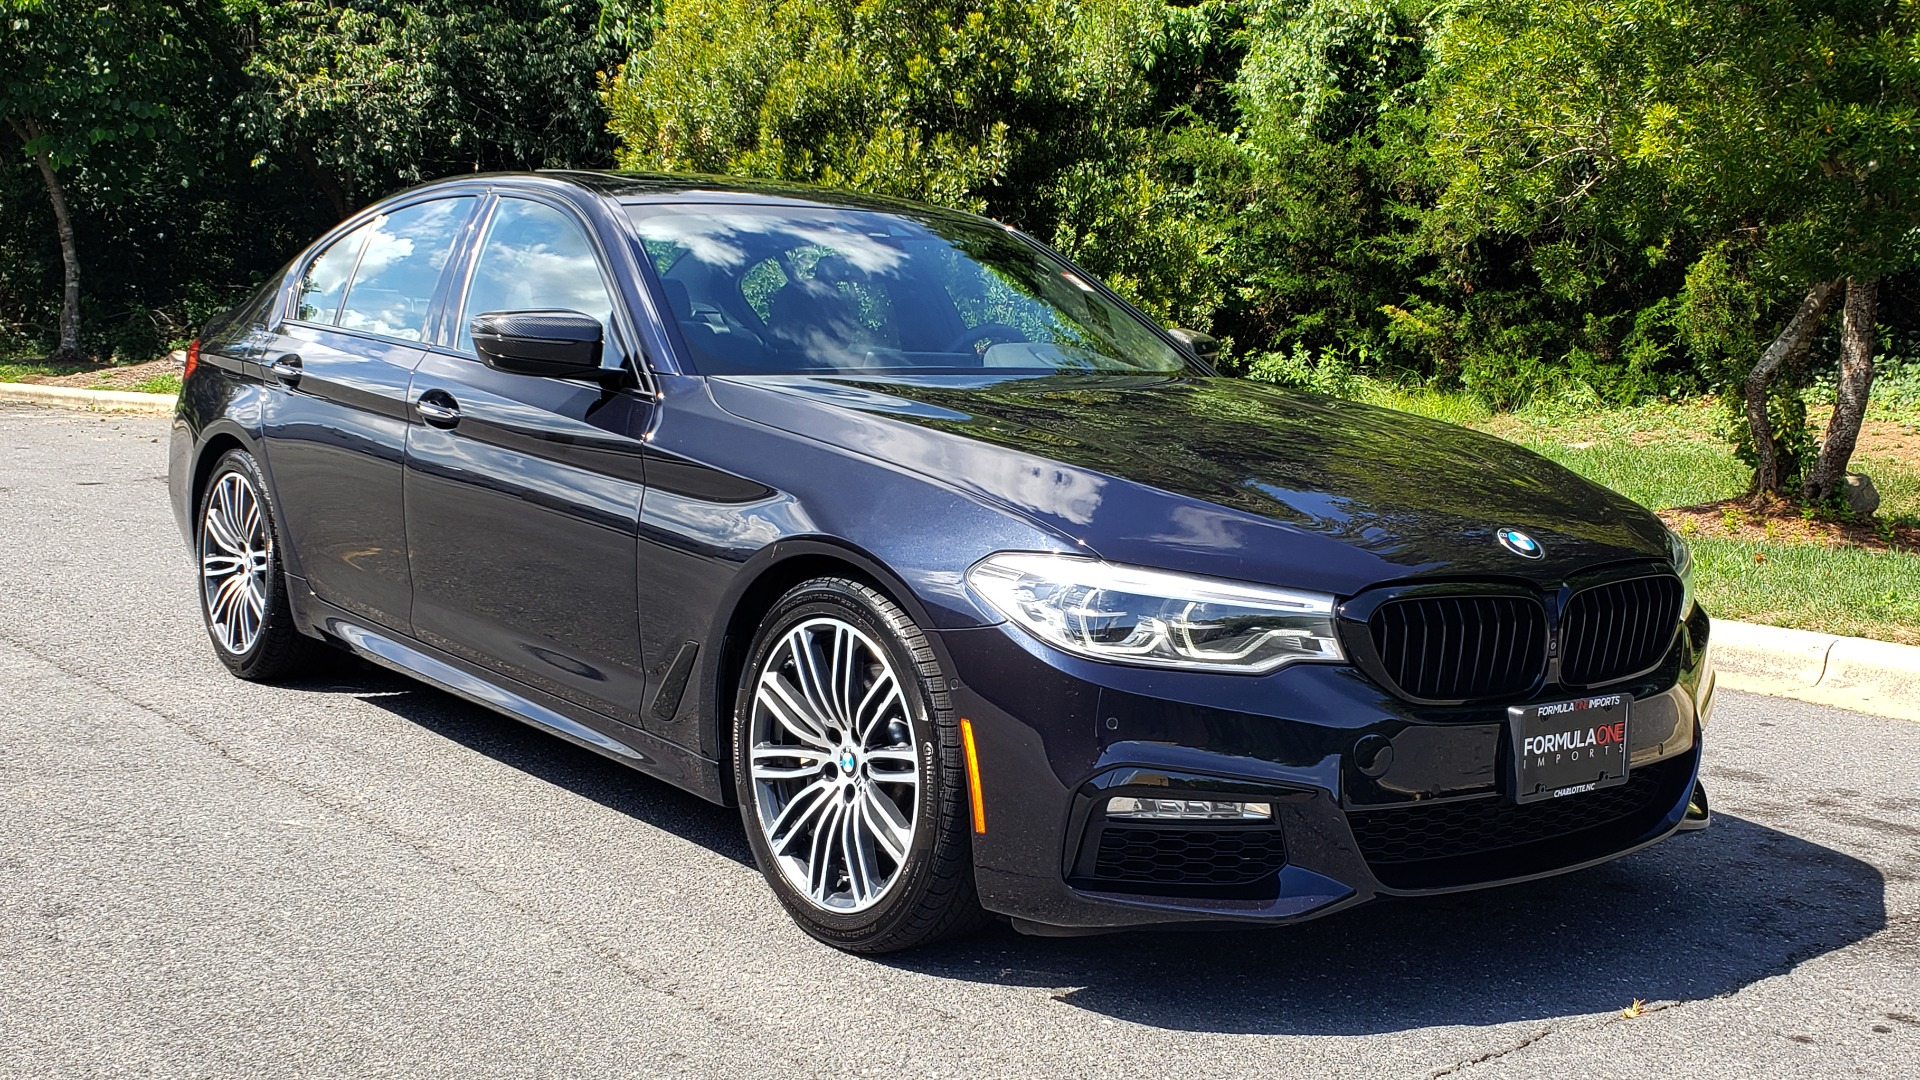 Used 2017 BMW 5 SERIES 540I XDRIVE PREMIUM / NAV / DRVR ASST PLUS / CLD WTHR / SUNROOF / REARVIEW for sale Sold at Formula Imports in Charlotte NC 28227 4